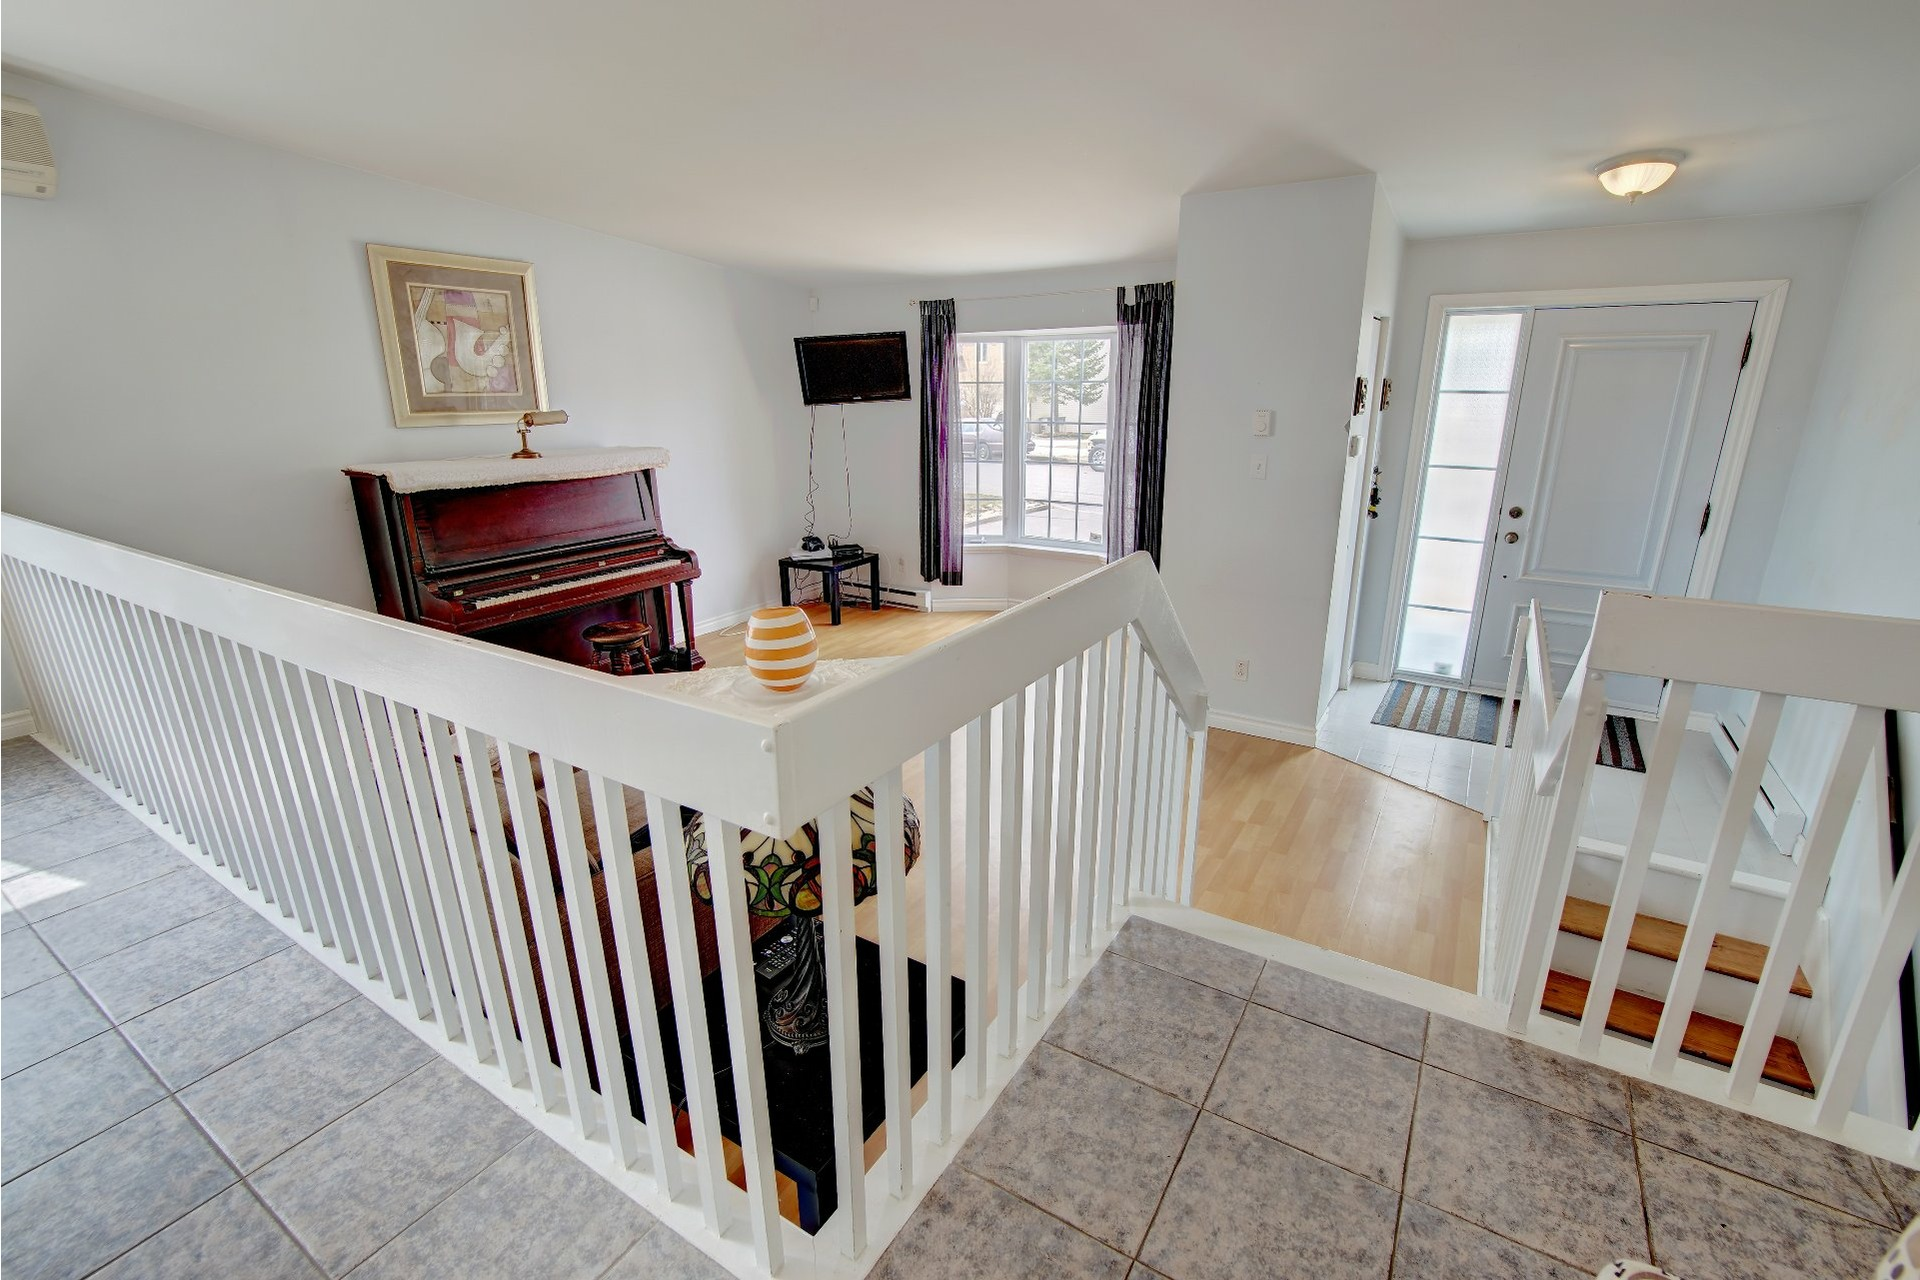 image 7 - House For sale Vaudreuil-Dorion - 11 rooms